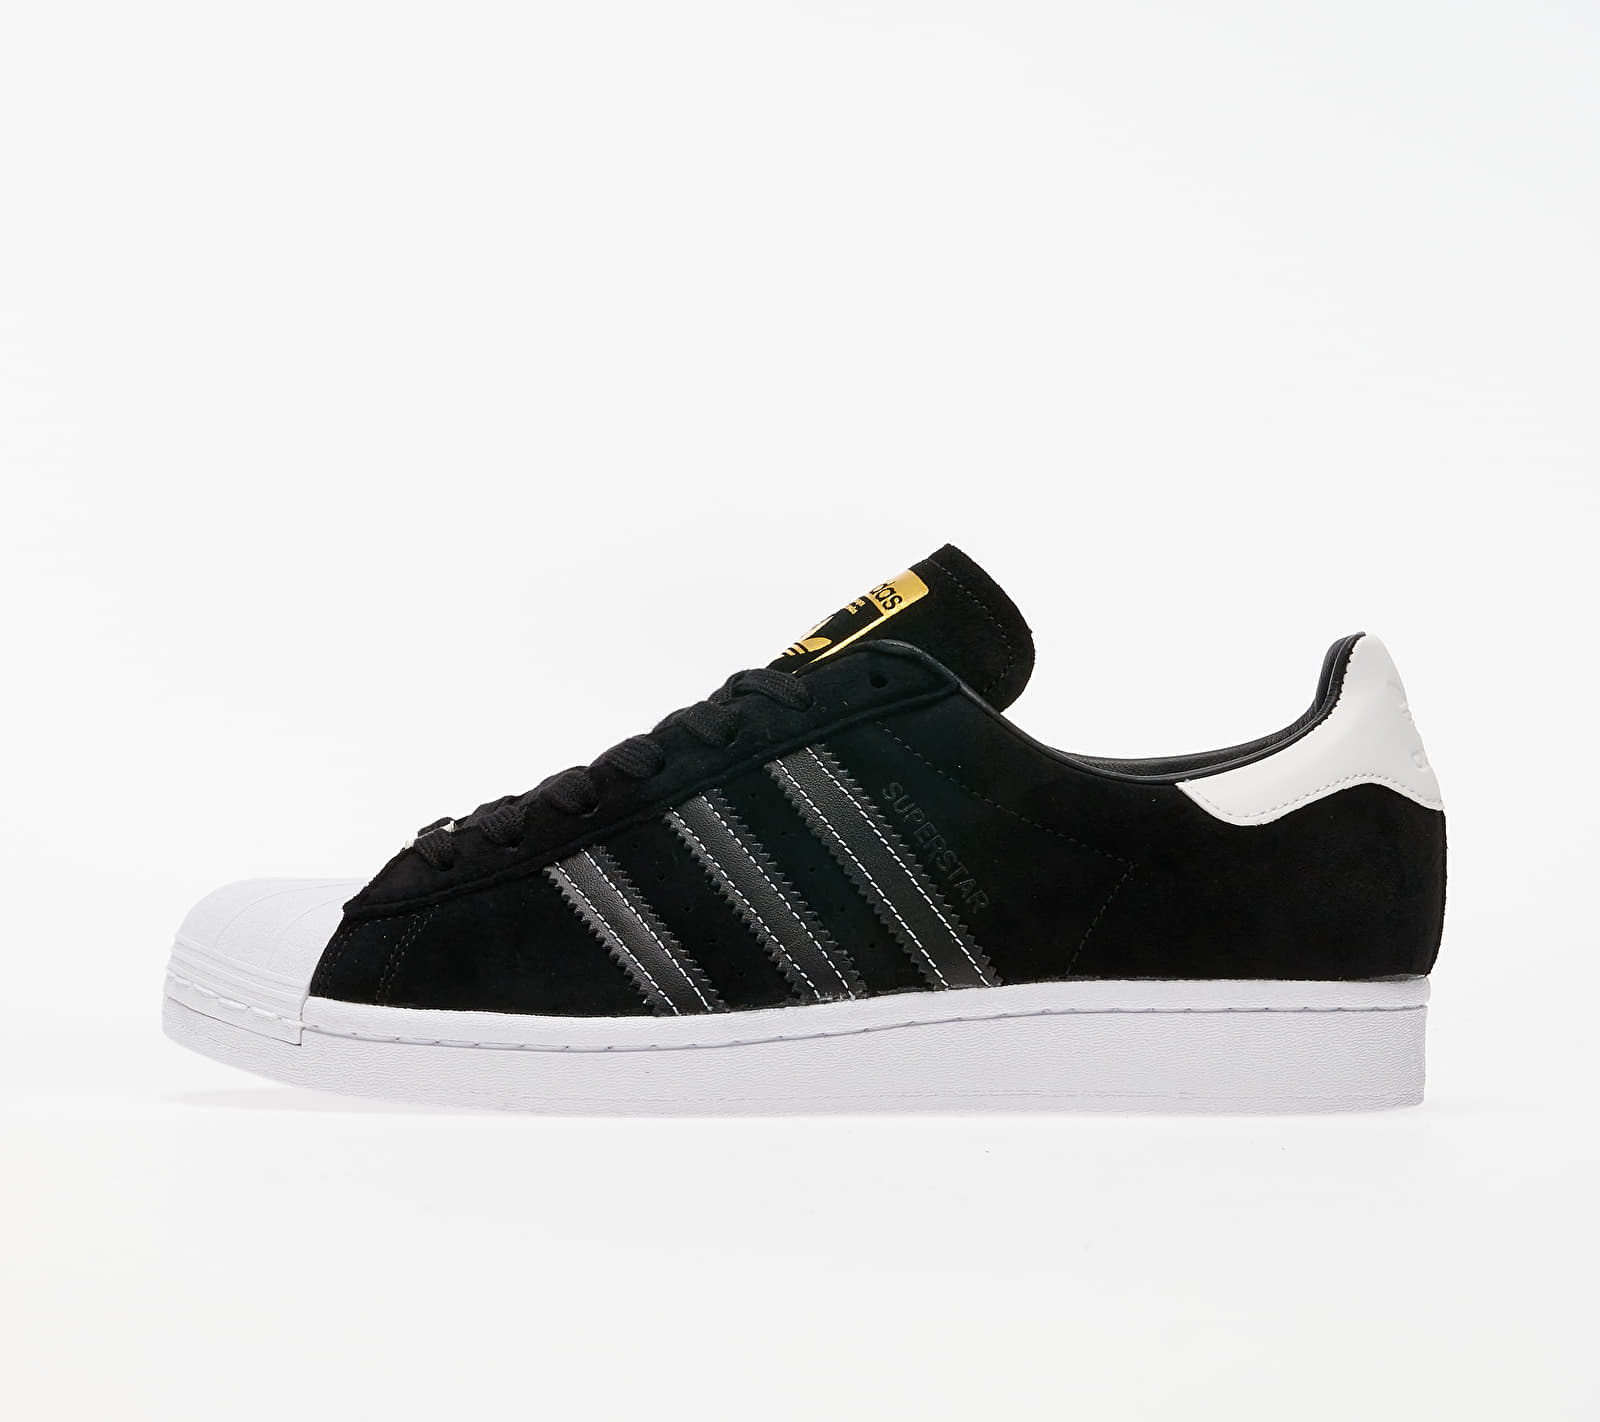 adidas Superstar Core Black/ Core Black/ Gold Metalic EUR 41 1/3